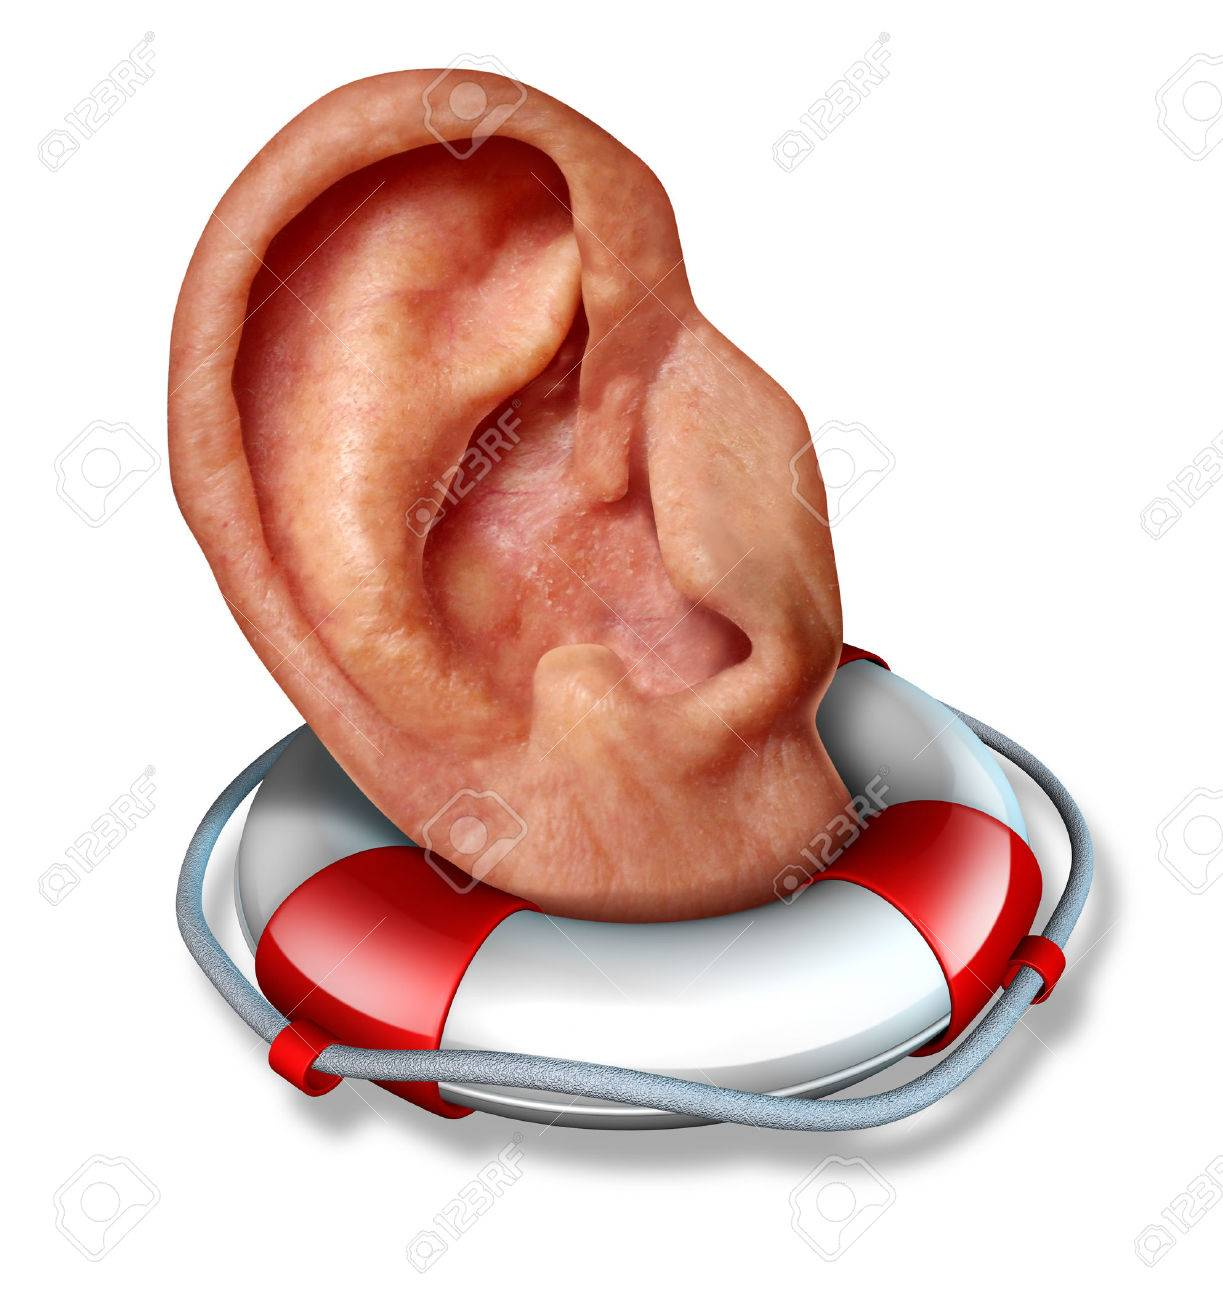 Saving your hearing health care concept with a human ear in a lifesaver or life belt as a lifeline icon to  protect the function of  to hear sounds and noise as a medical symbol and a social icon to communicate listen and pay attention Stock Photo - 22667042